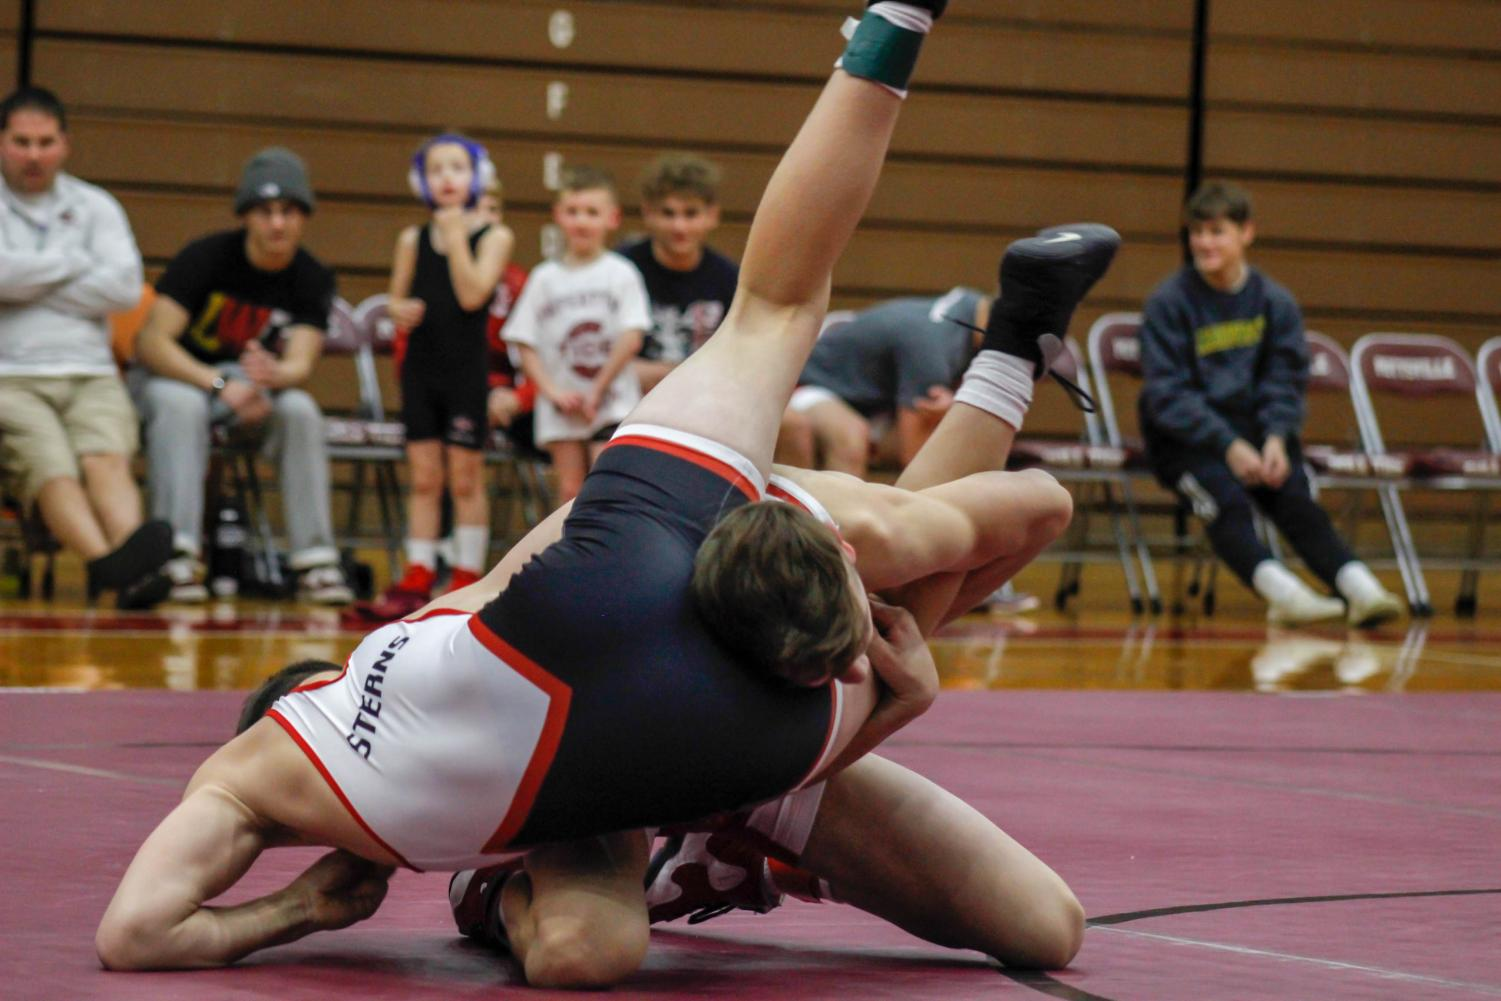 """On Sunday evening, freshman Dalton Monger attempts to pin teammate, junior Sammy Sterns. The proceeds from the event benefited the family of Jaden Leiby in paying for his medical bills. Teammate sophomore Bryce Shappell, who also wrestled that night, said, """"It felt good to wrestle for a great cause."""""""